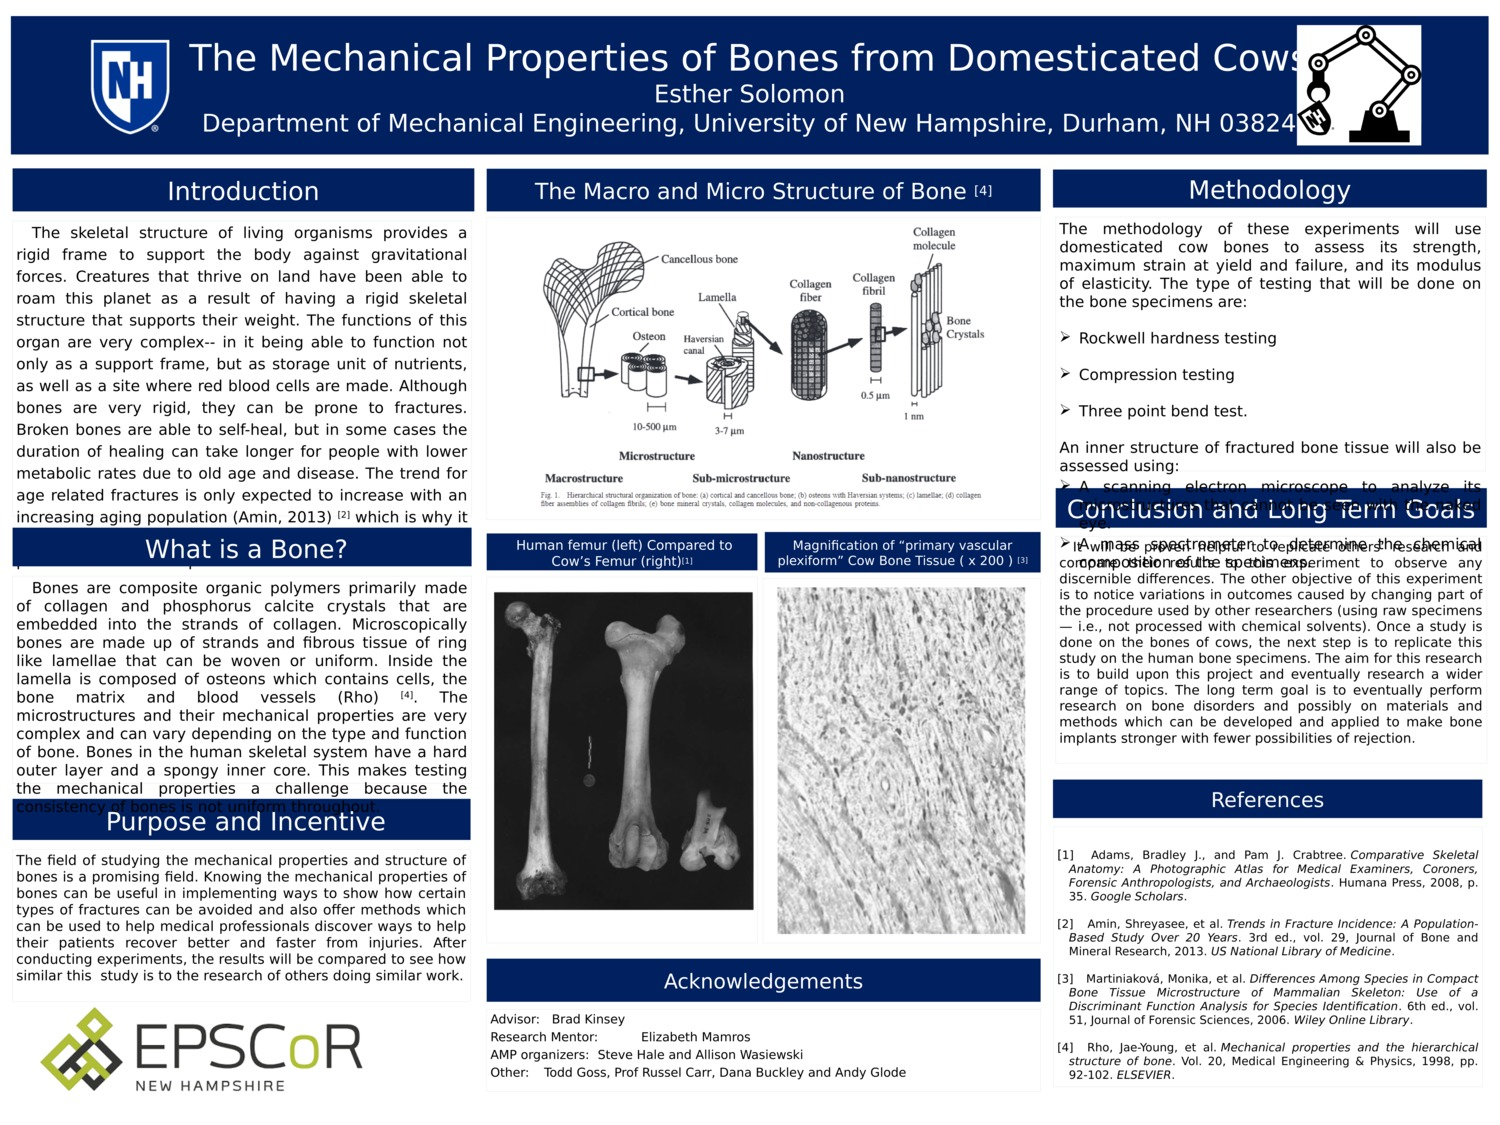 The Mechanical Properties Of Bones From Domesticated Cows by ehs1024